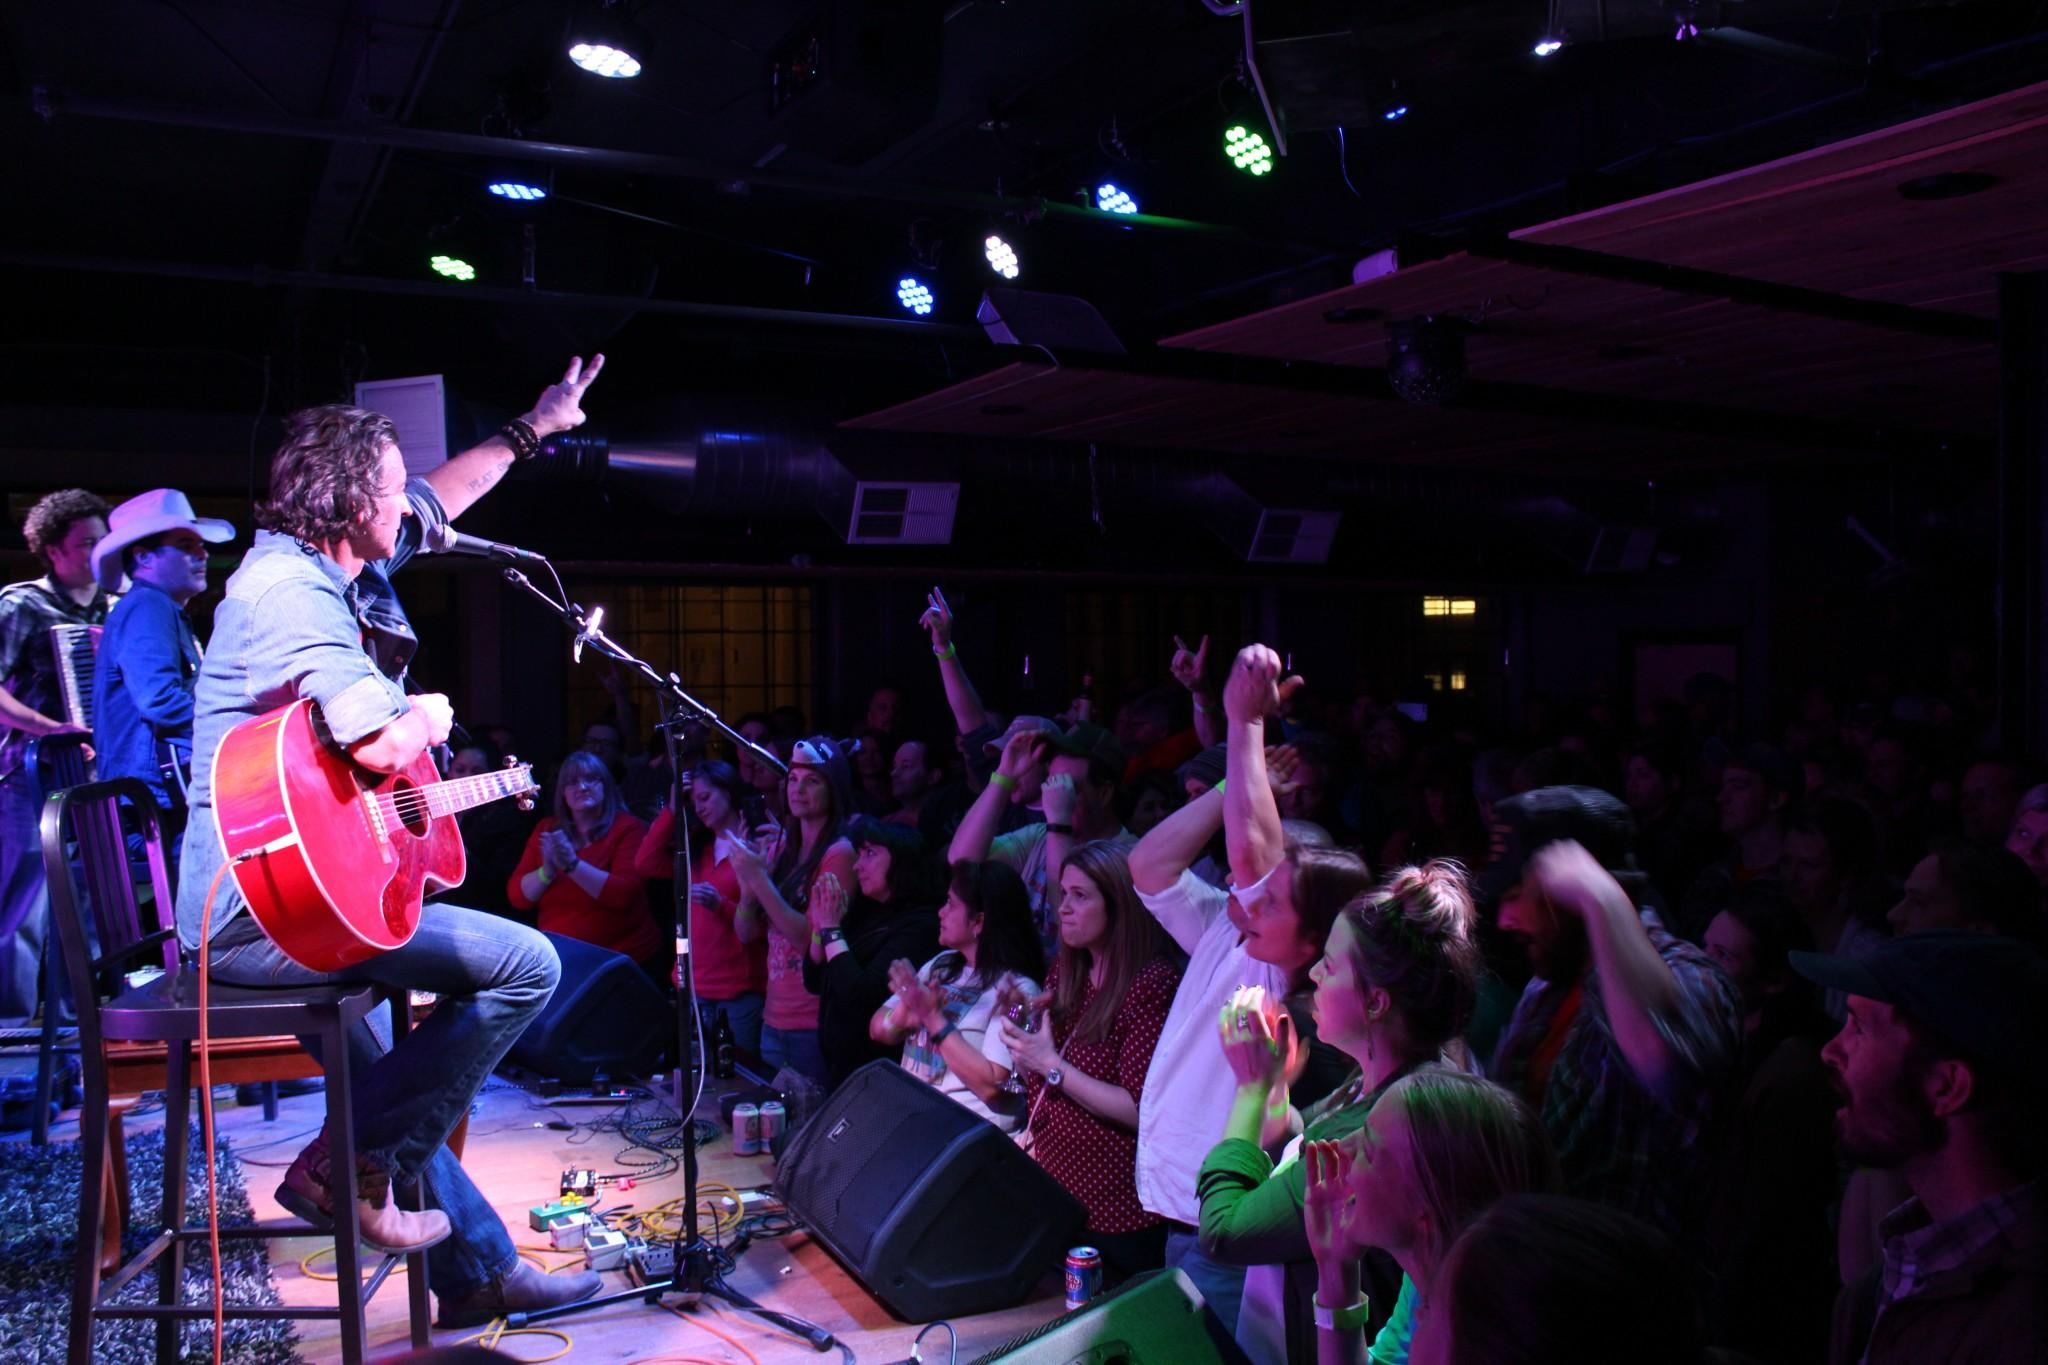 Roger Clyne does the peace sign to the crowd at the Downtown Artery, accompanied by Jim Dalton (center-stage) and Jeremy Lawton (far left)